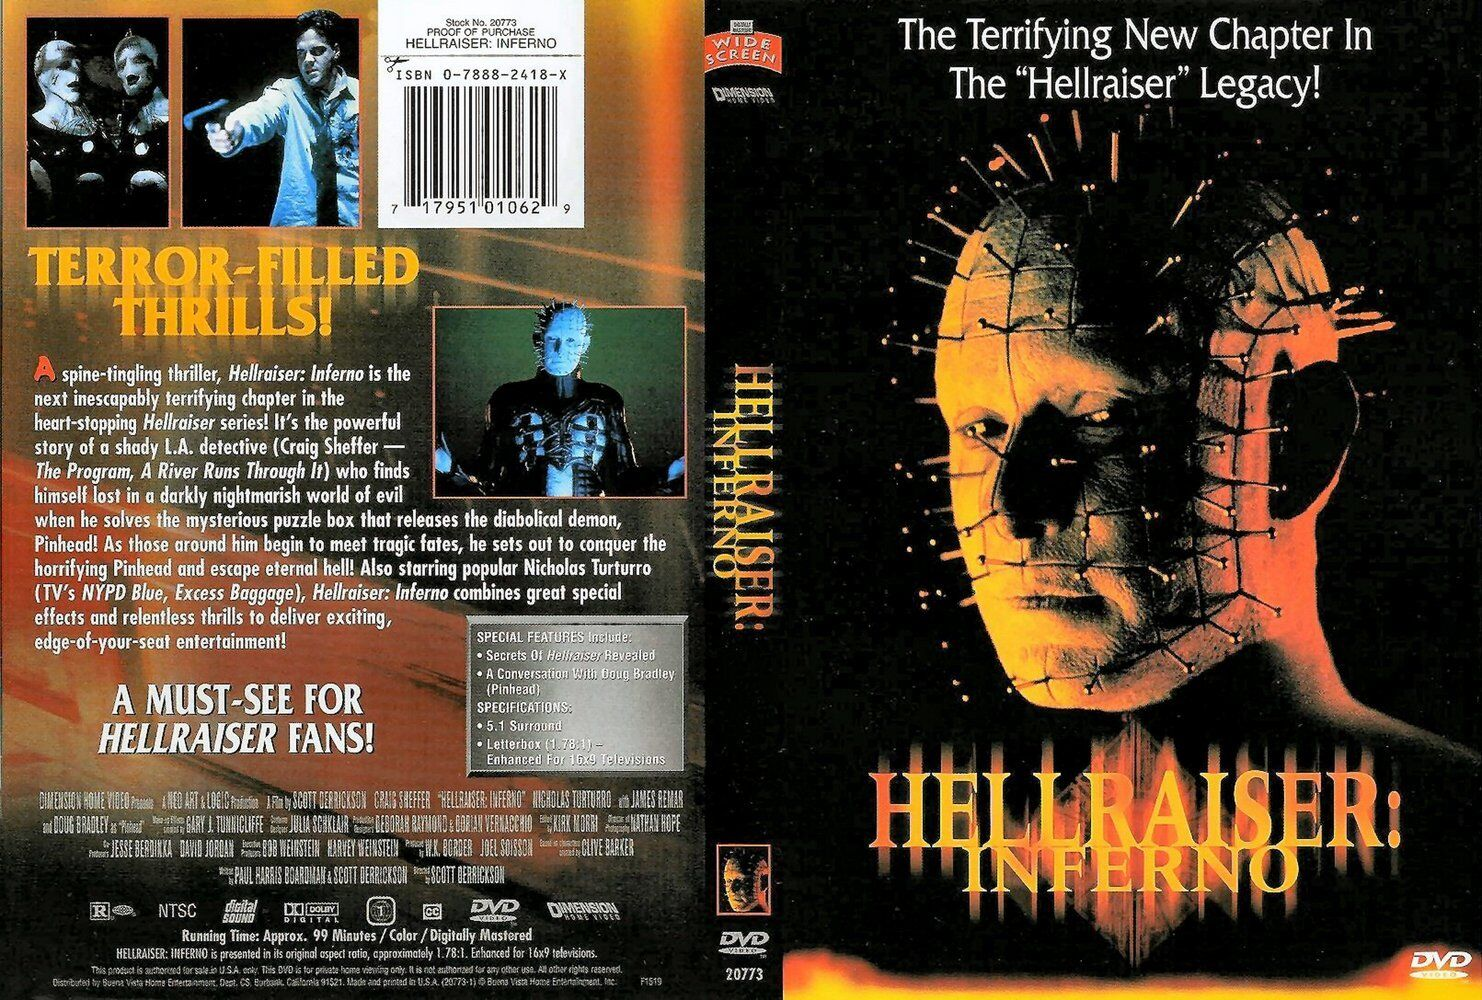 HELLRAISER INFERNO Clive Barker's - NEW DVD Box FREE Post - mmoetwil@hotmail.com